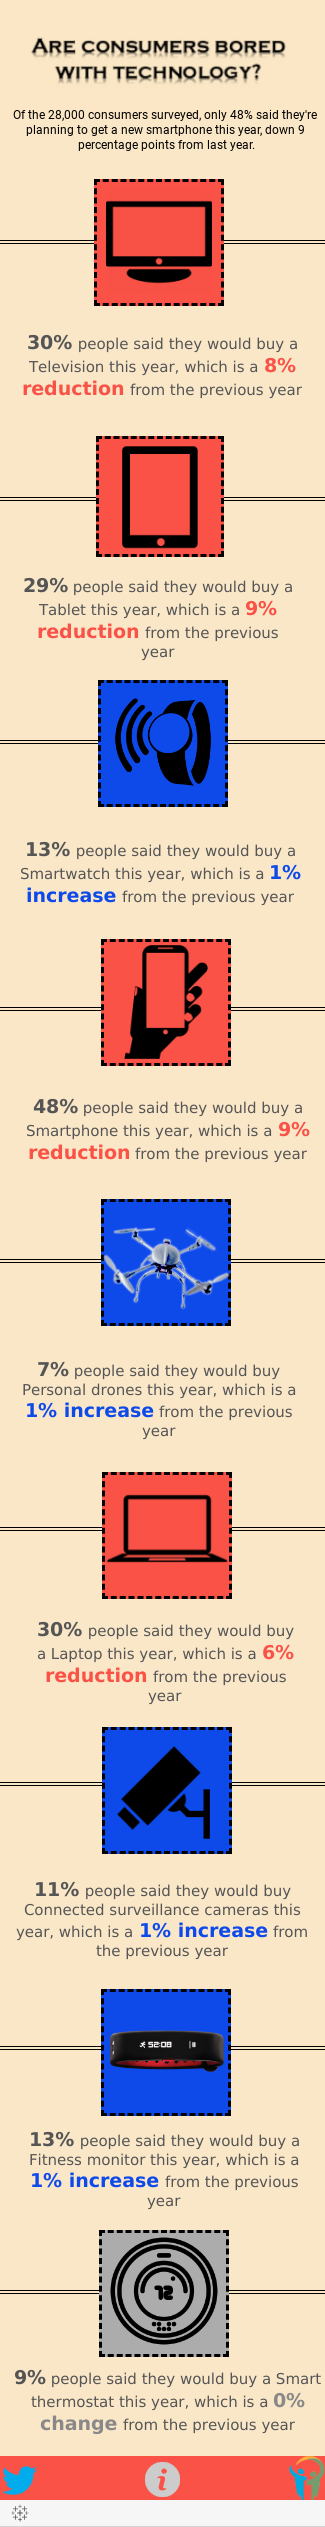 Are consumers bored with technology?